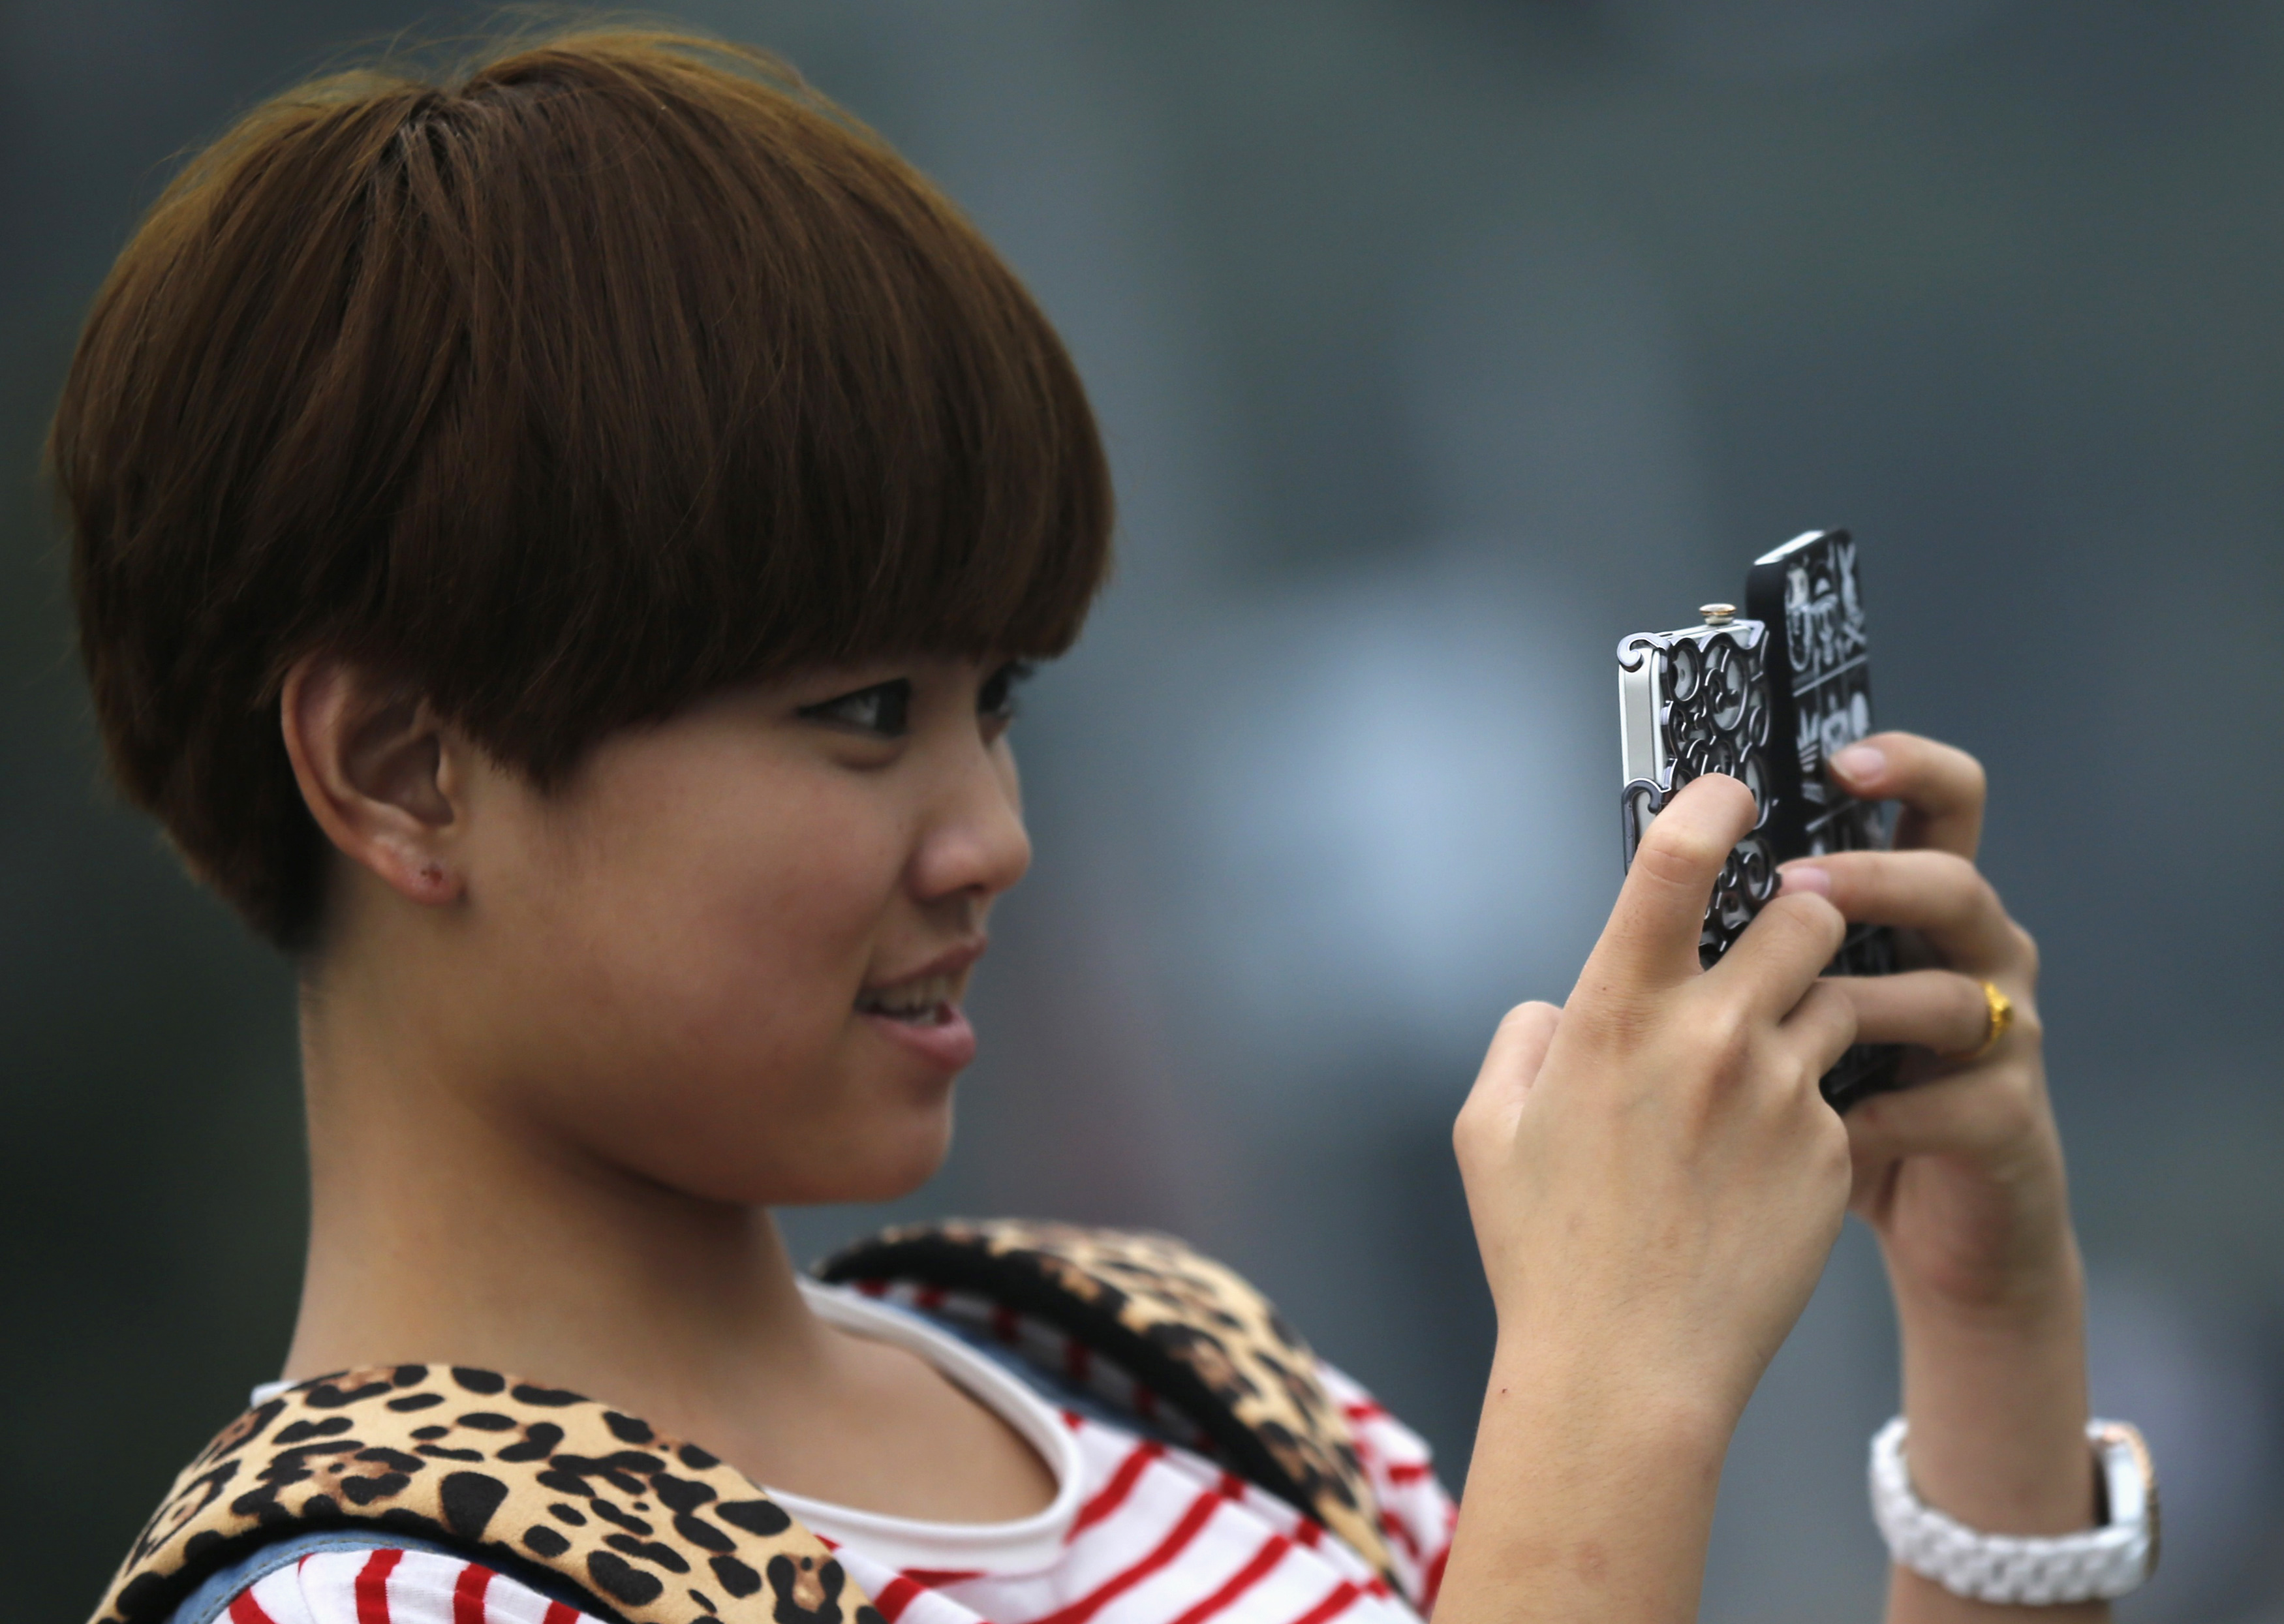 A young girl holds two mobile phones as she takes pictures at a downtown area of Shanghai, China, Oct. 22, 2012.